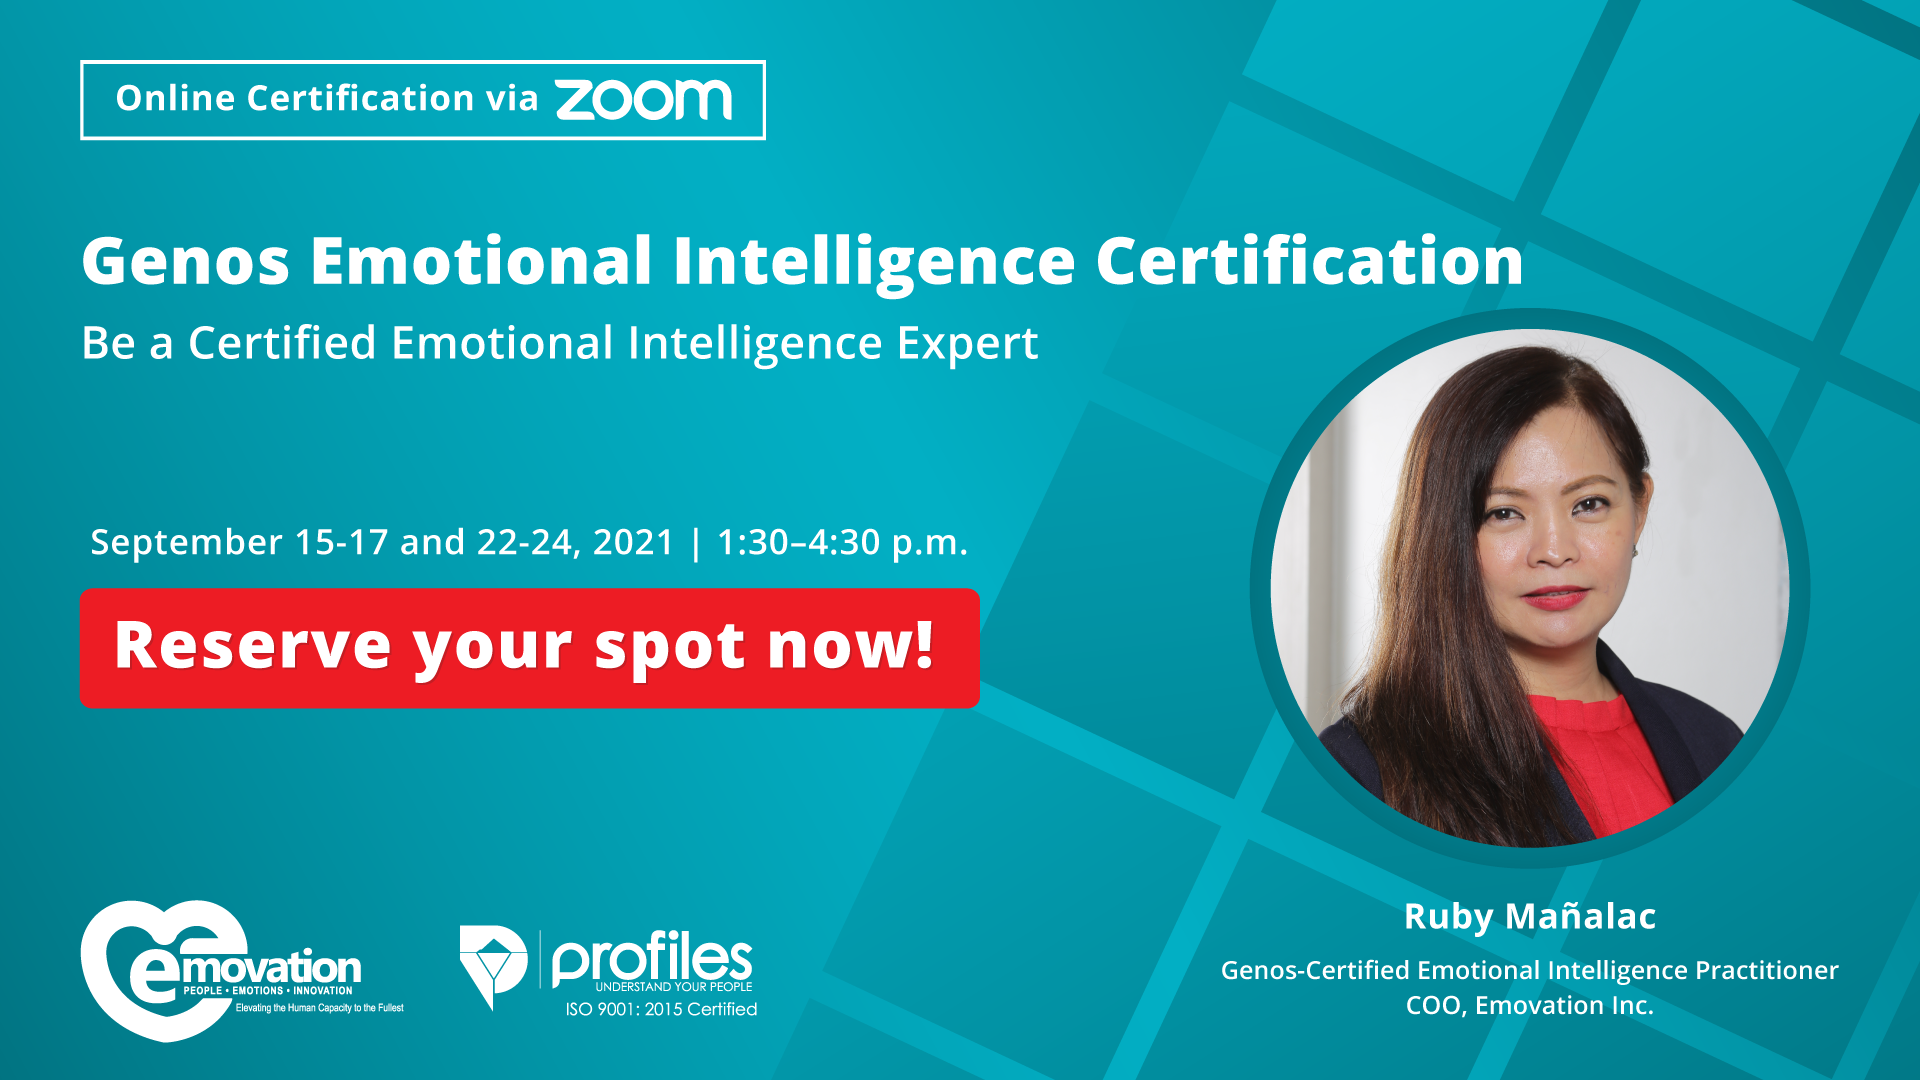 Genos Emotional Intelligence Certification Philippines